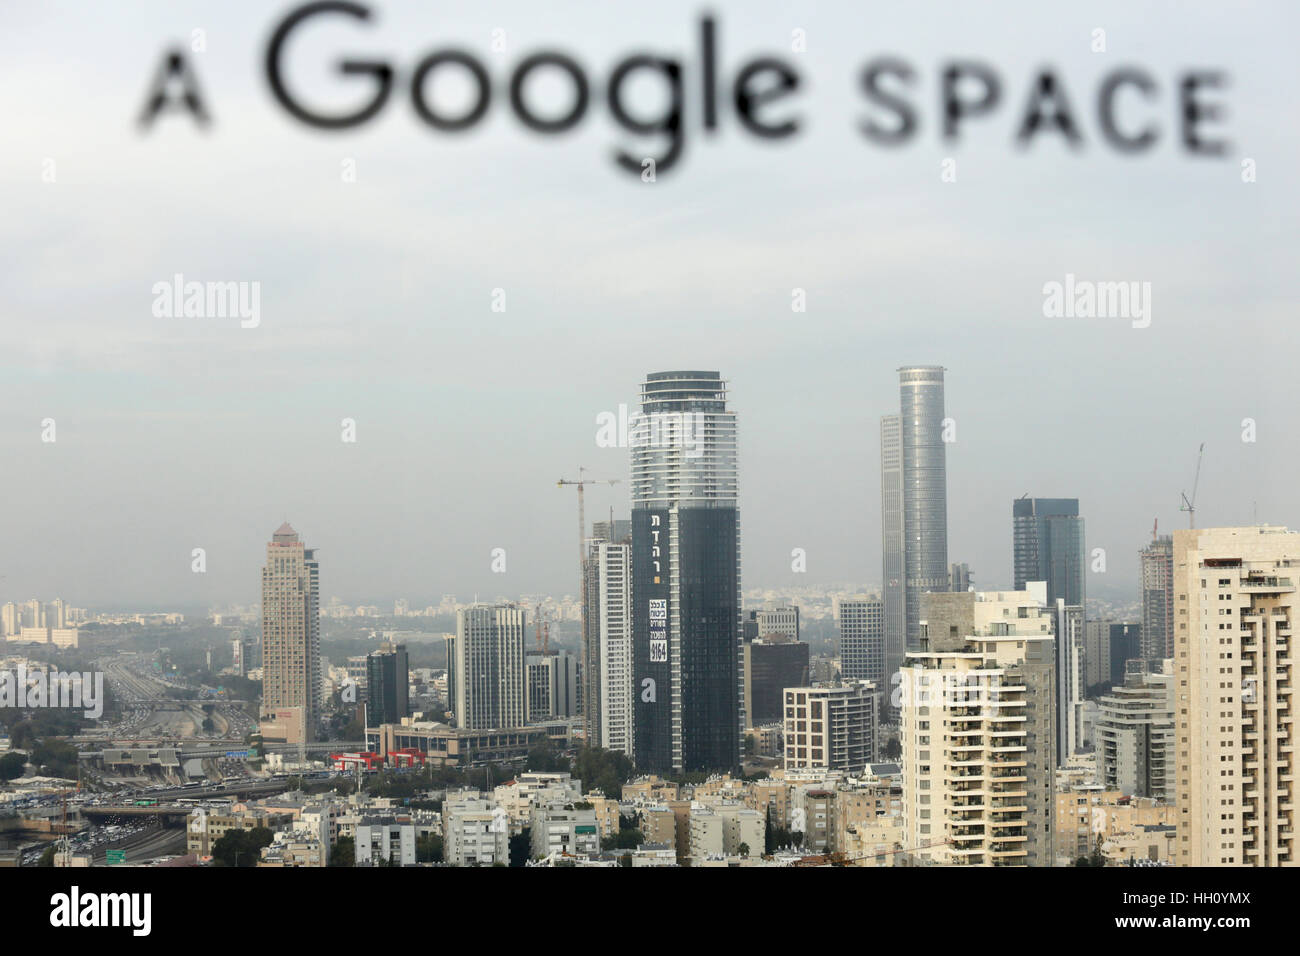 View of Tel Aviv from Google's offices in Tel Aviv, Israel - Stock Image